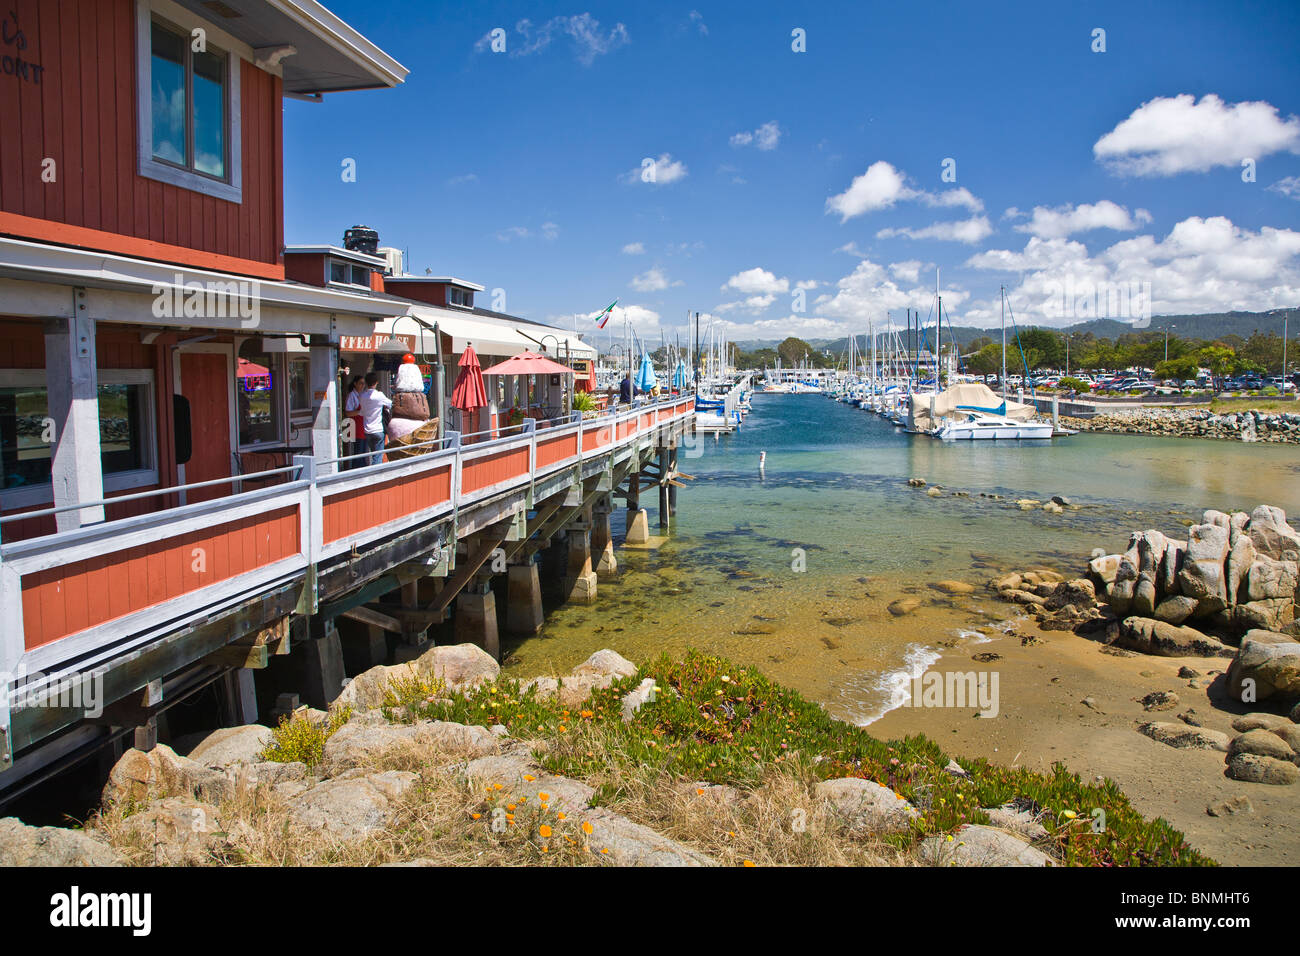 Historic Fishermans Wharf shopping and restaurant area in Monterey California - Stock Image